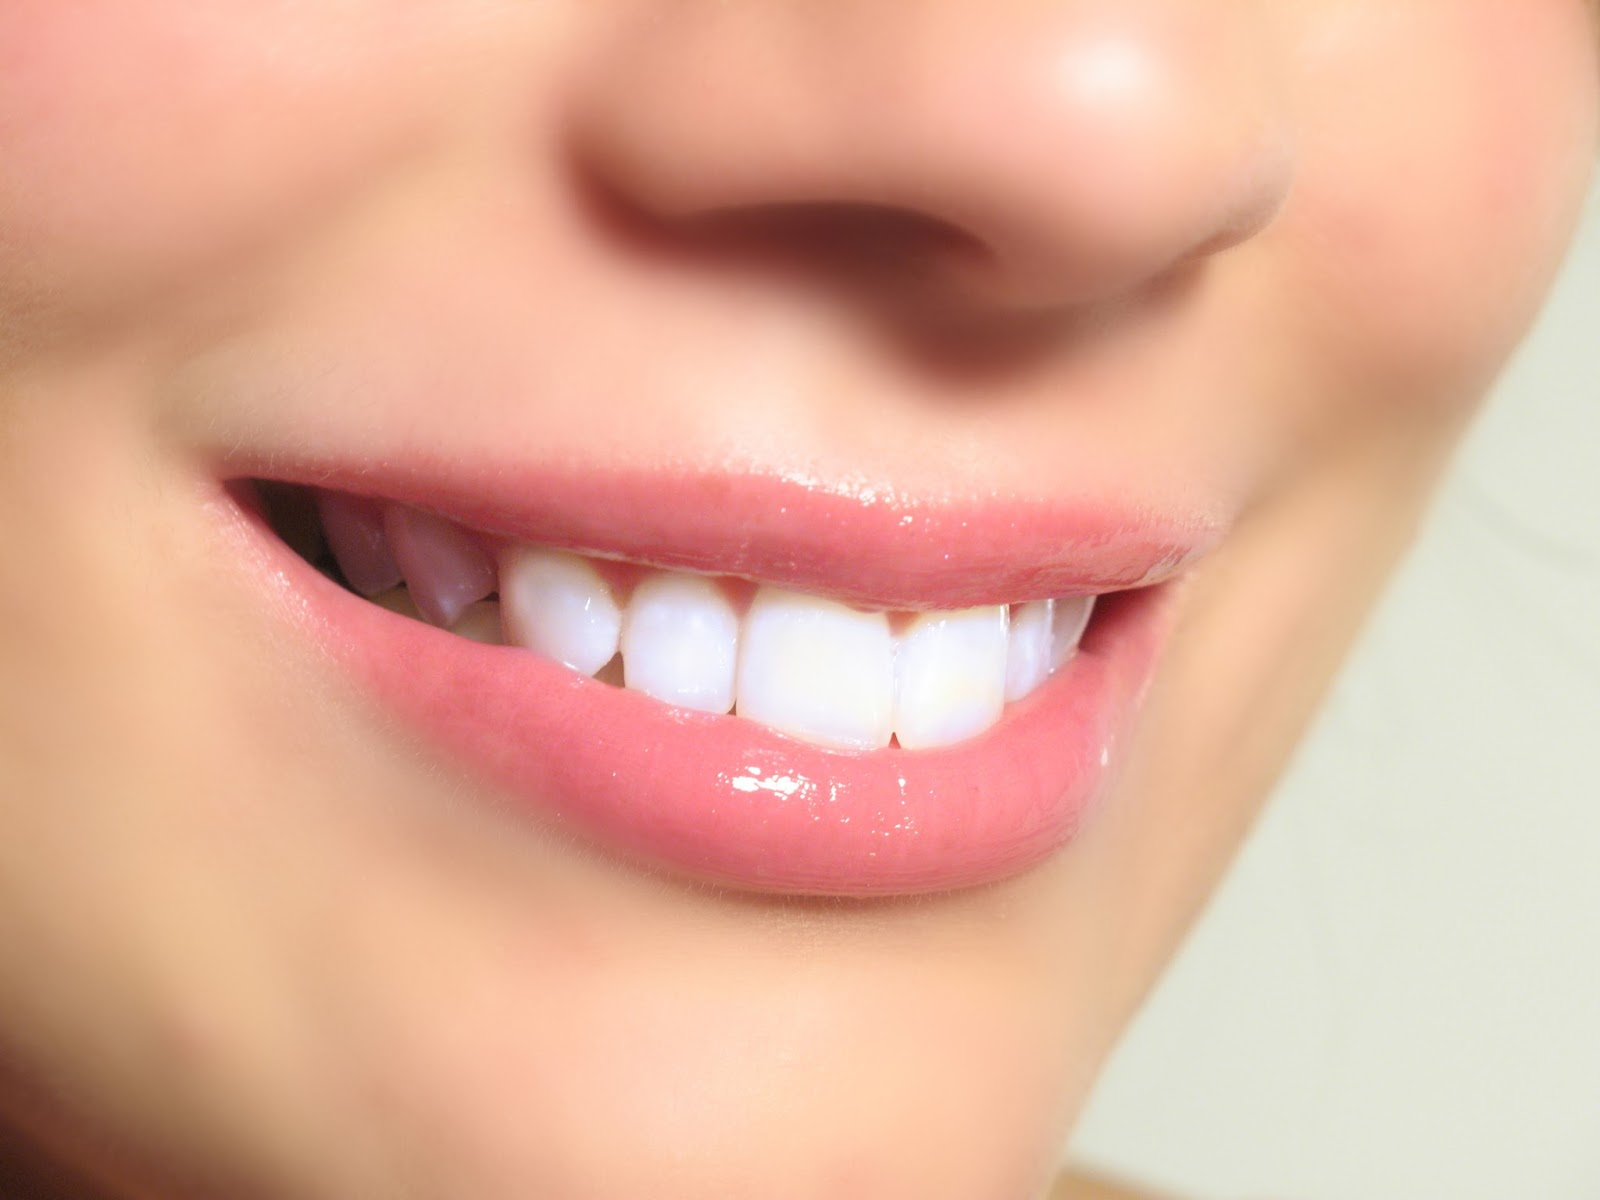 Home Remedies To Whiten Teeth at Home Naturally